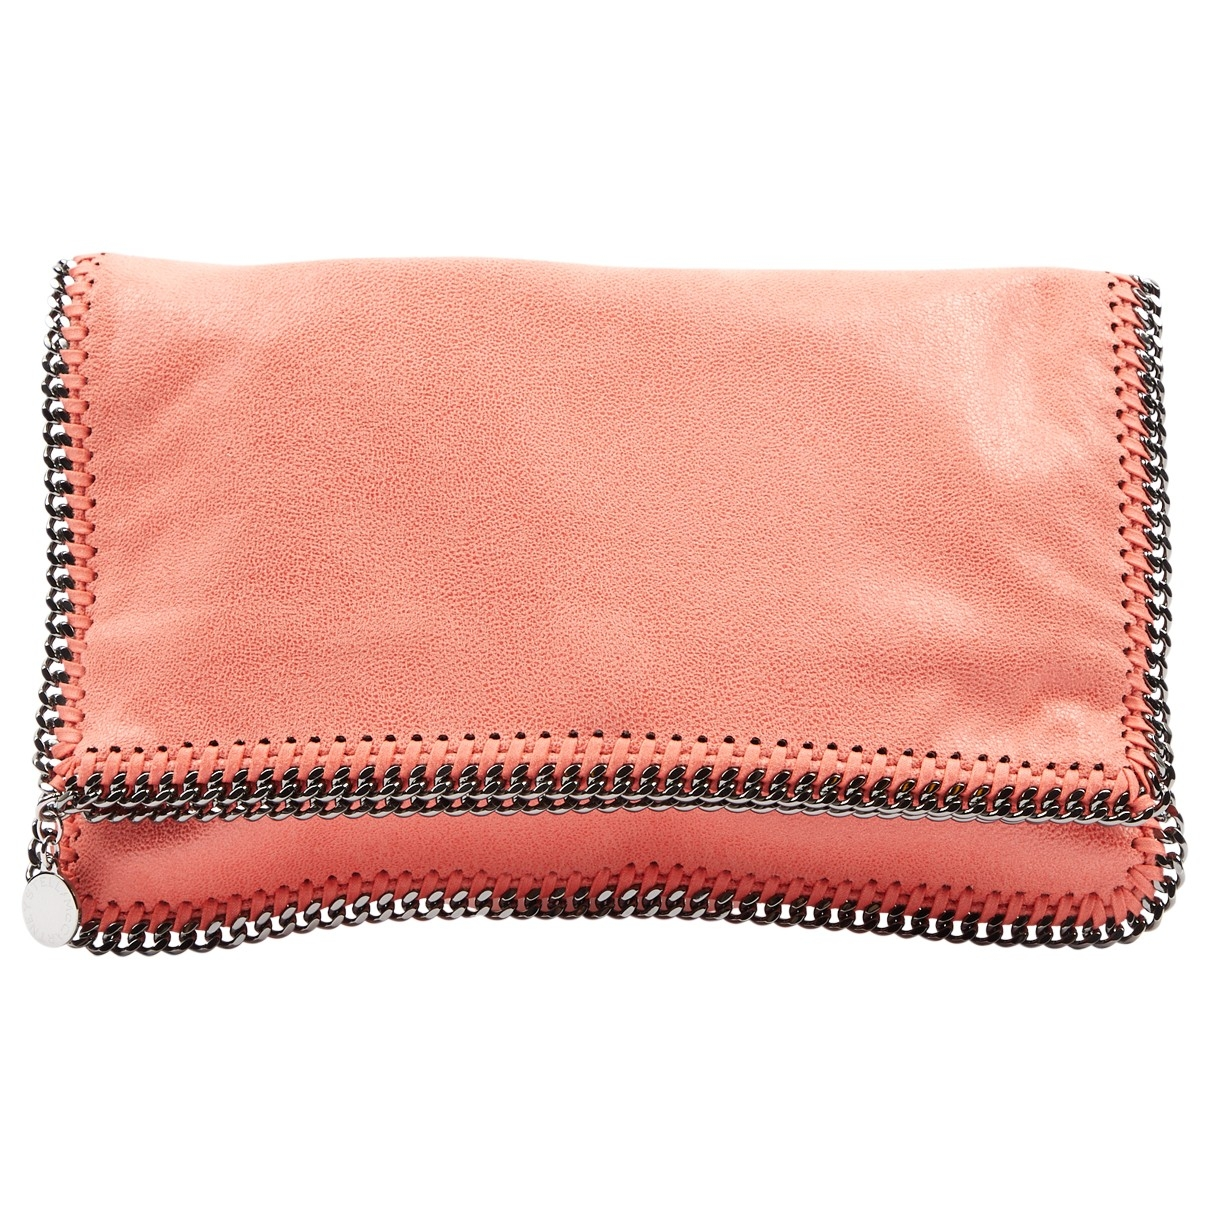 Stella Mccartney Falabella Orange Clutch bag for Women \N